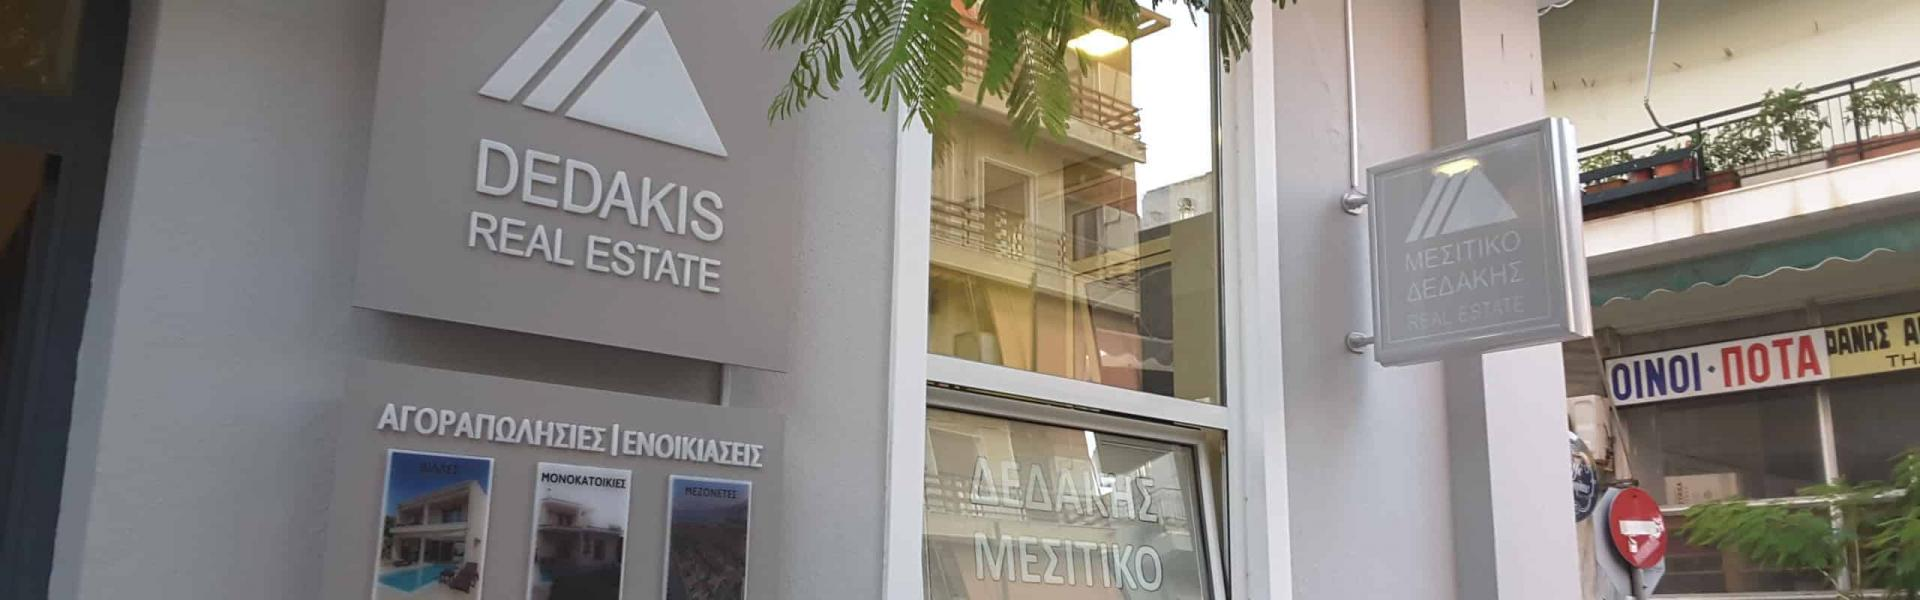 dedakis agency in Loutraki